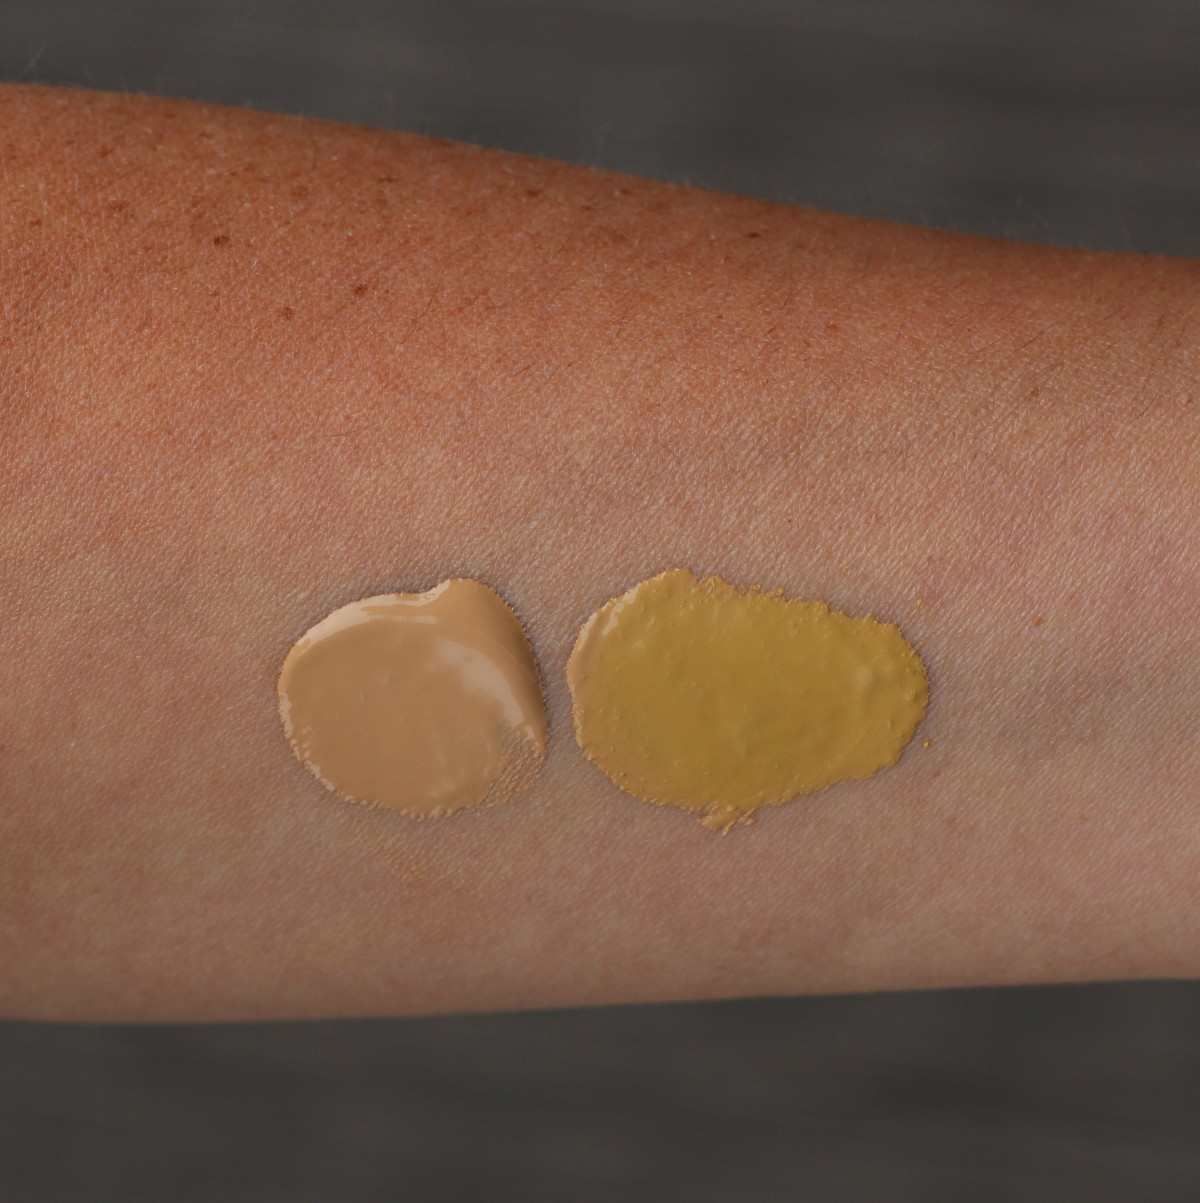 Swatch of cc cream with and without turmeric